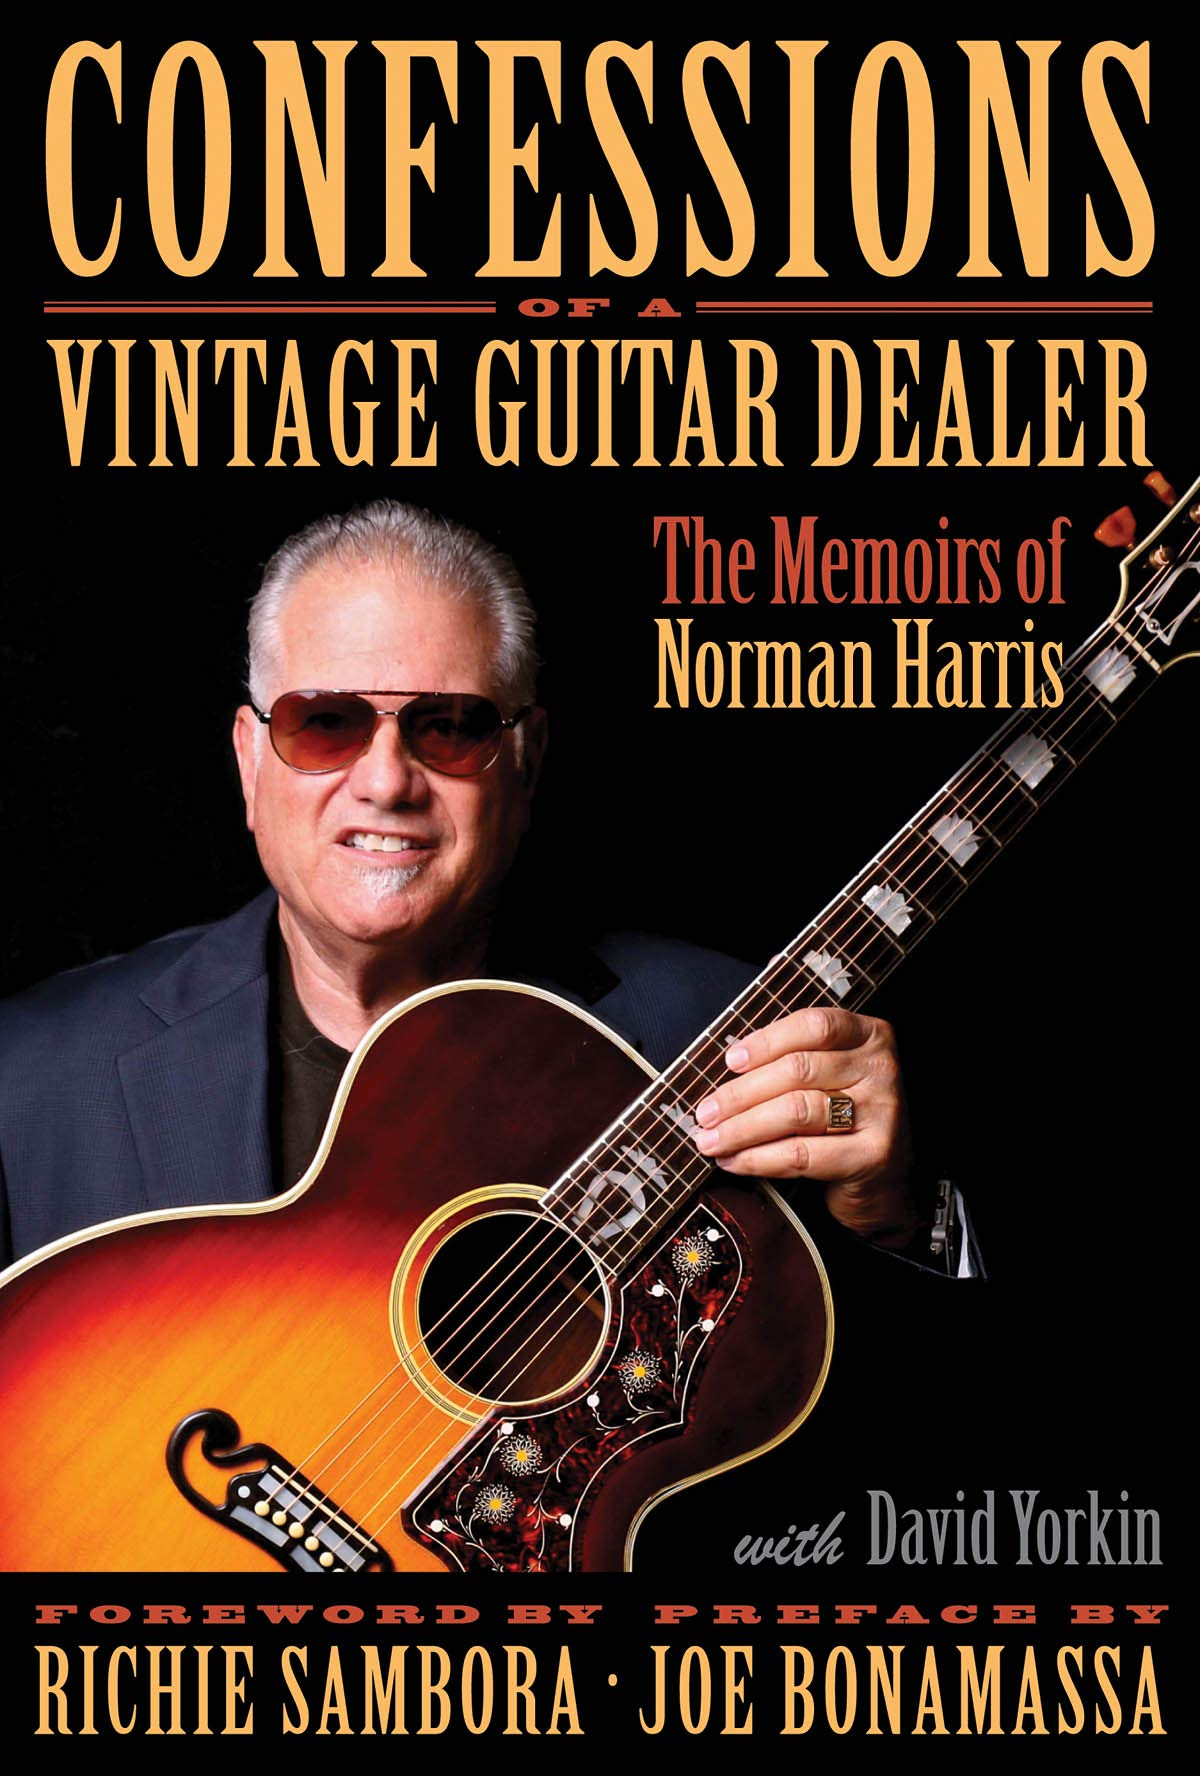 Confessions of a Vintage Guitar Dealer: The Memoirs of Norman Harris by Hal Leonard